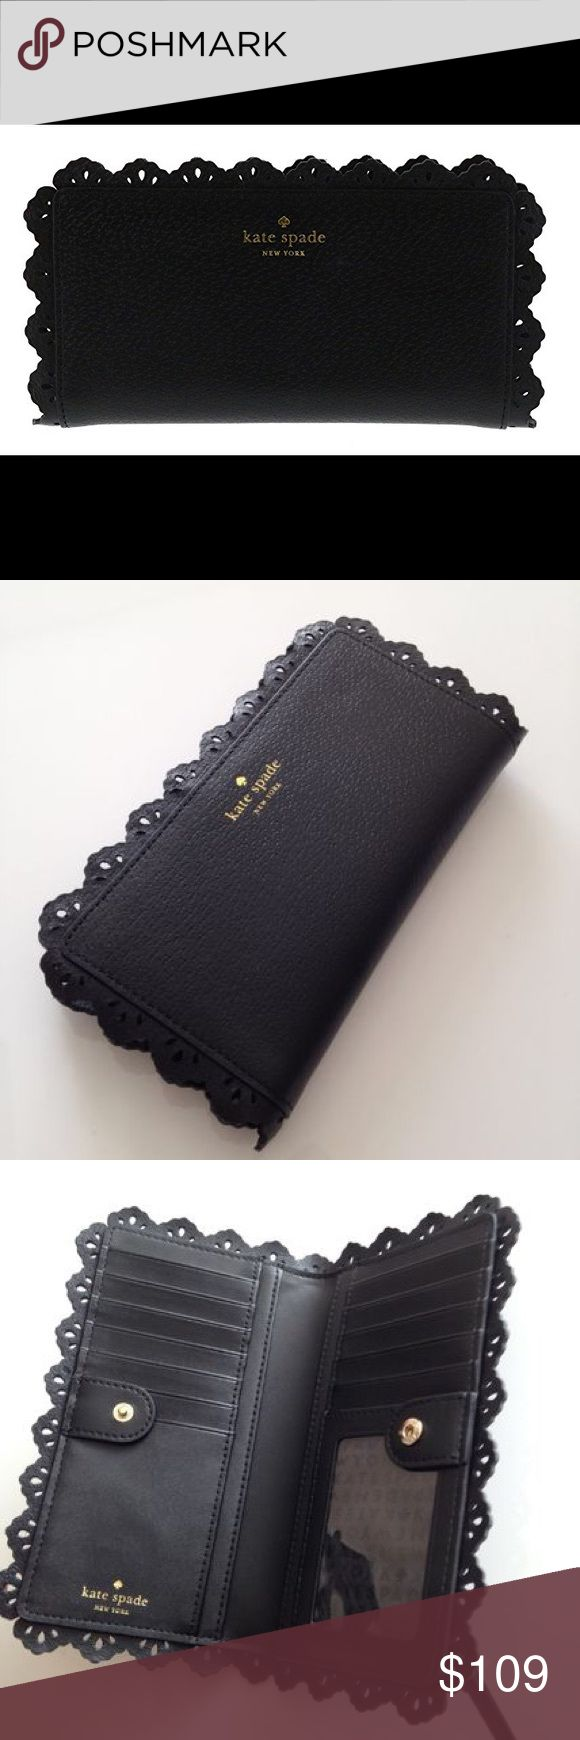 JUST IN! ♠️Kate Spade Stacy Fordam Court Wallet♠️ zip closure ·         Kate Spade New York embossed leather wallet with laser etched decorative frill ·         Gold toned embossed brand name and logo in front ·         Partially gusseted zip pocket in the back ·         Interior features 13 card slots, 1 ID slot, and 4 slip pockets ·         Approx. dimensions: 7.5 in (L) x 4 in (H) x 0.75 in (W) kate spade Bags Wallets